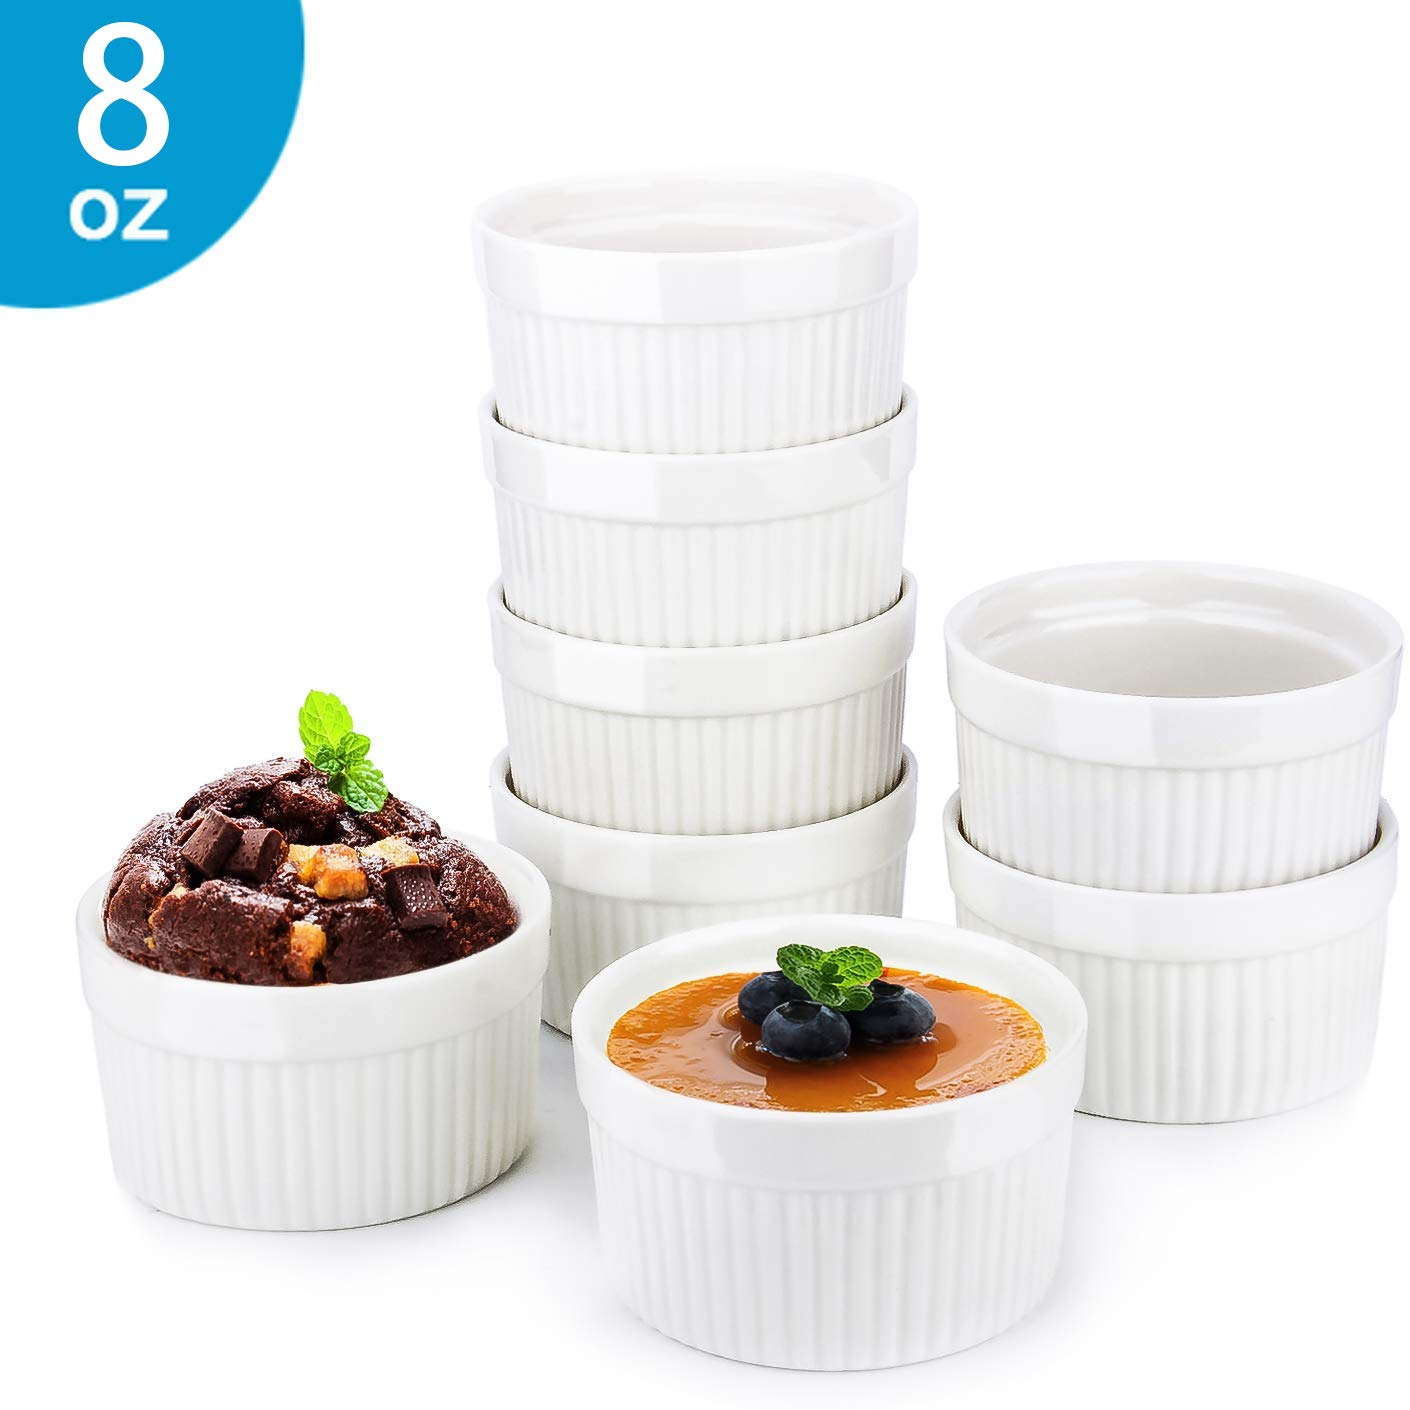 8 Oz Ramekin Bowls,8 PCS Bakeware Set for Baking and Cooking, Oven Safe Sleek Porcelain White Ramikins for Pudding, Creme Brulee, Custard Cups and Souffle Small instant table tray by WERTIOO